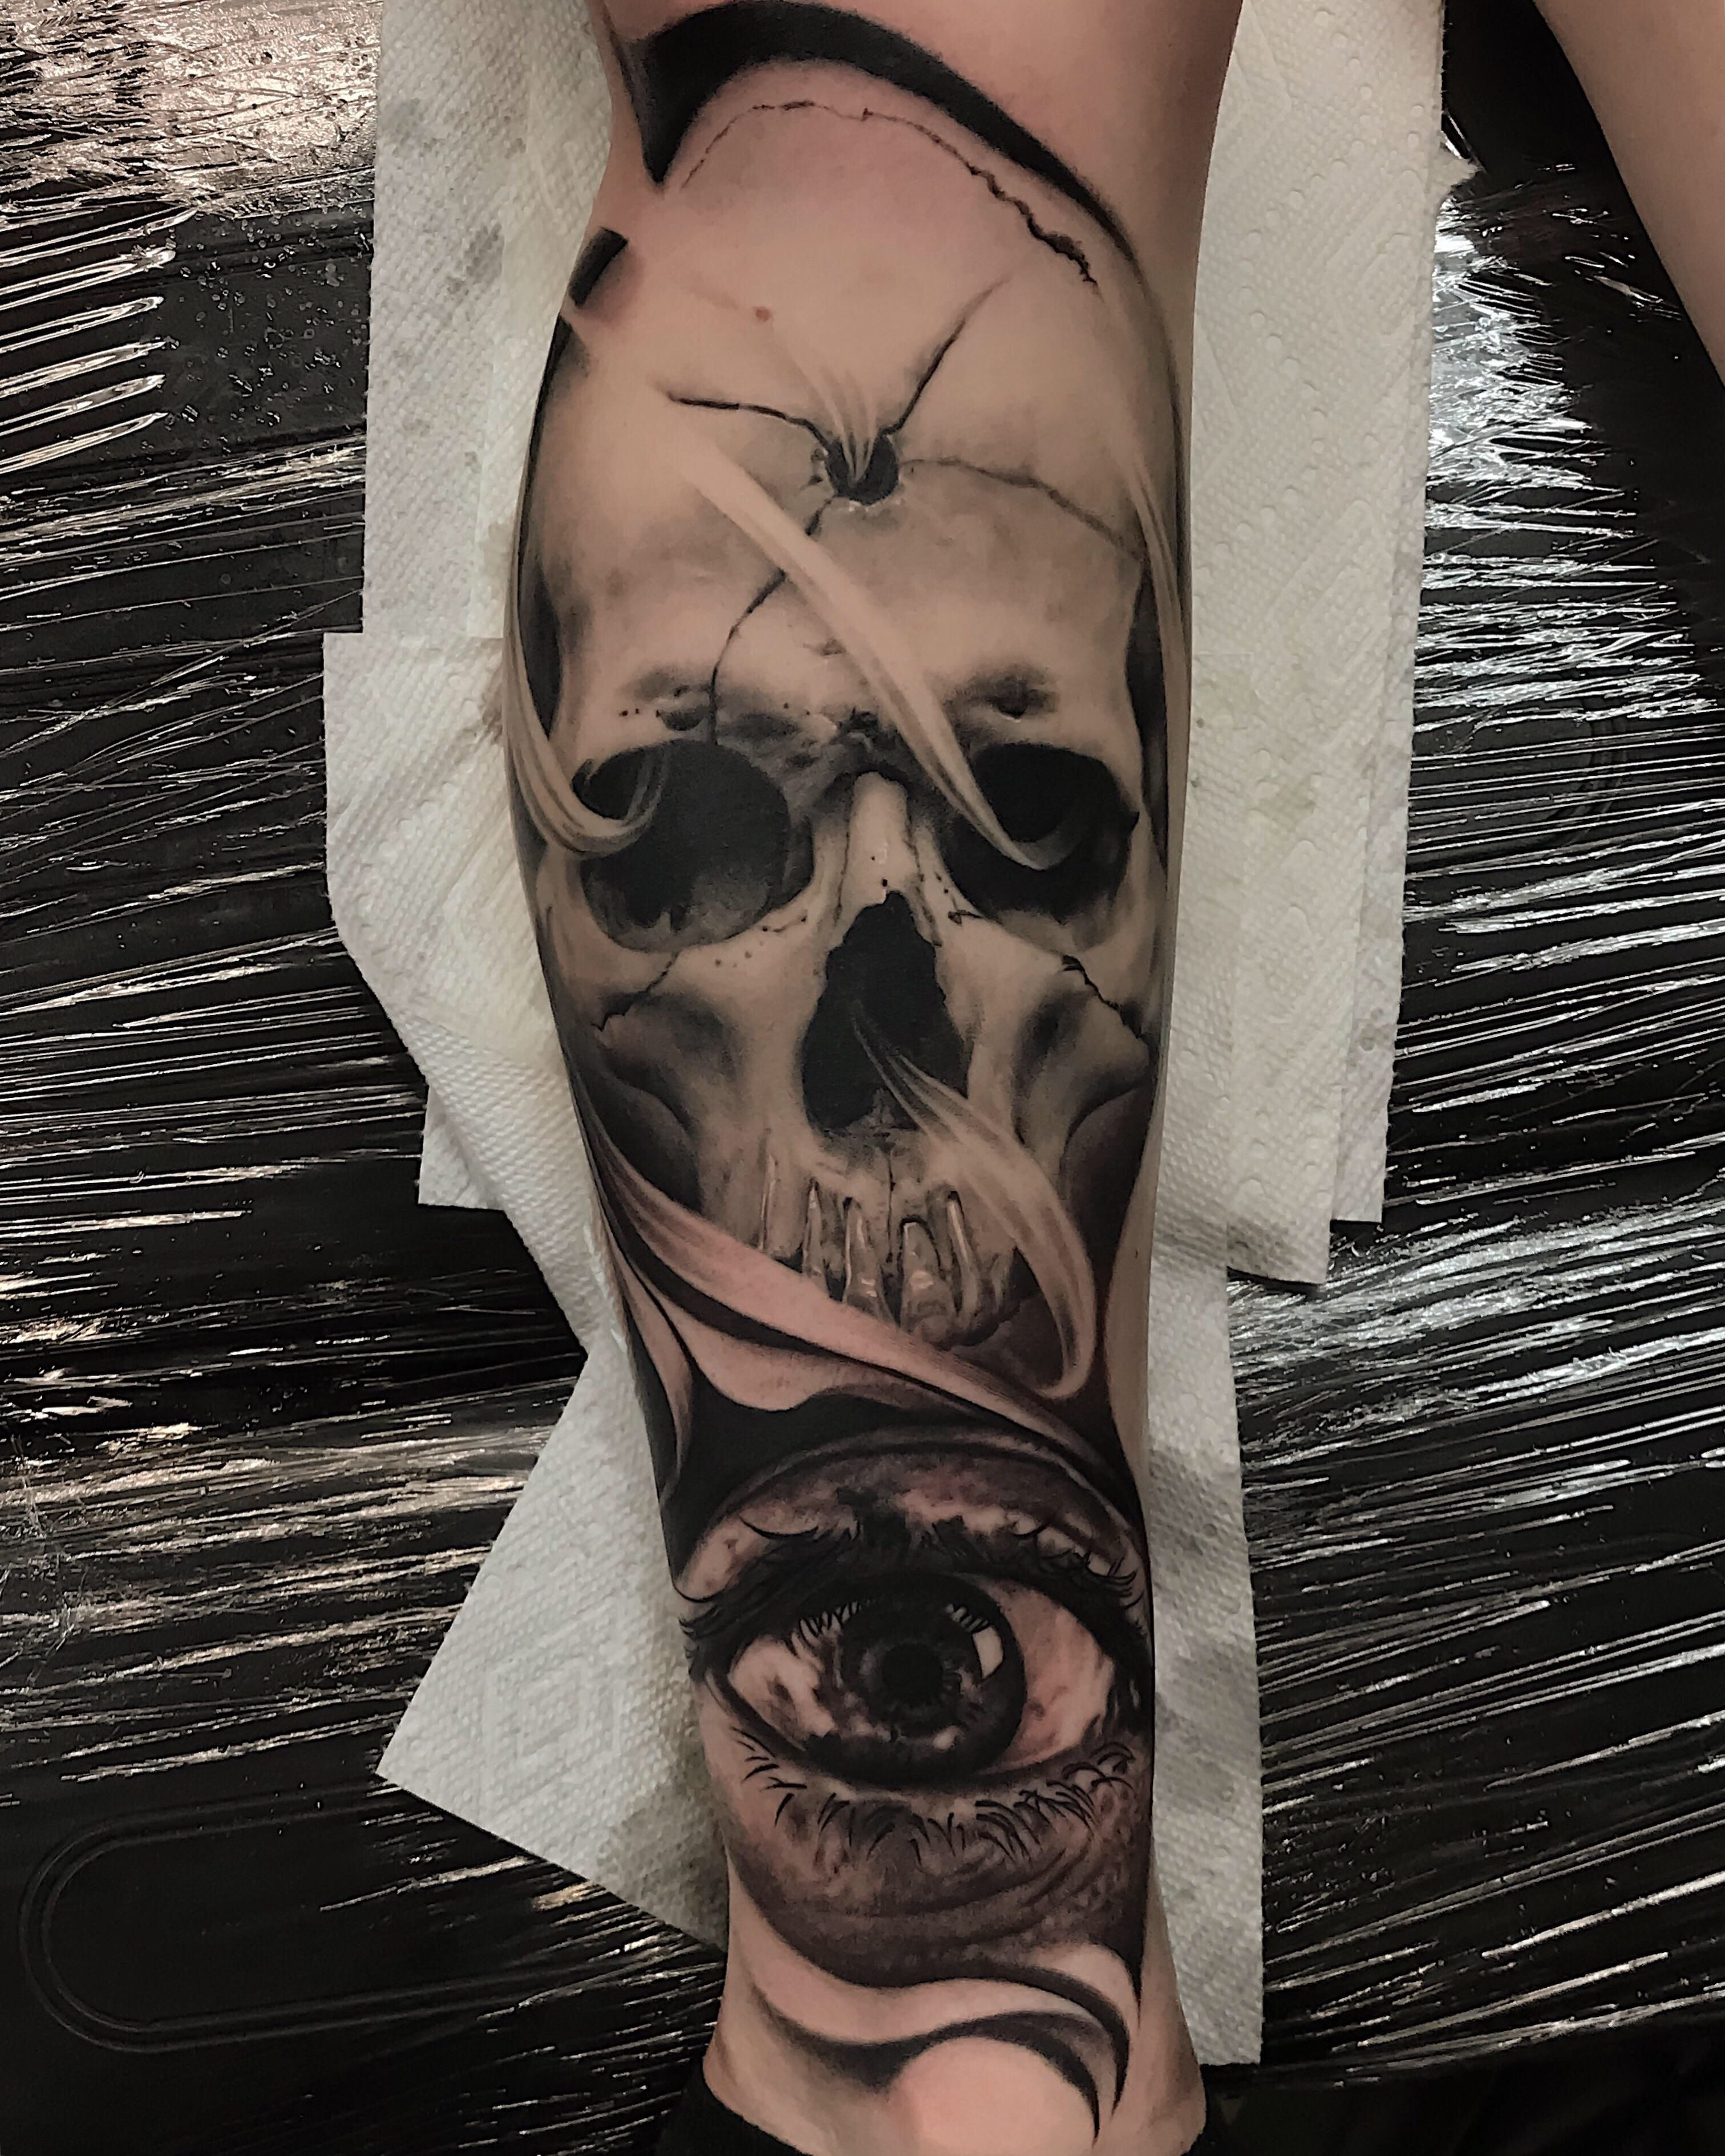 Done By Tommy Lee Lopez At Royal Craft Gallery In Az Royal Craft